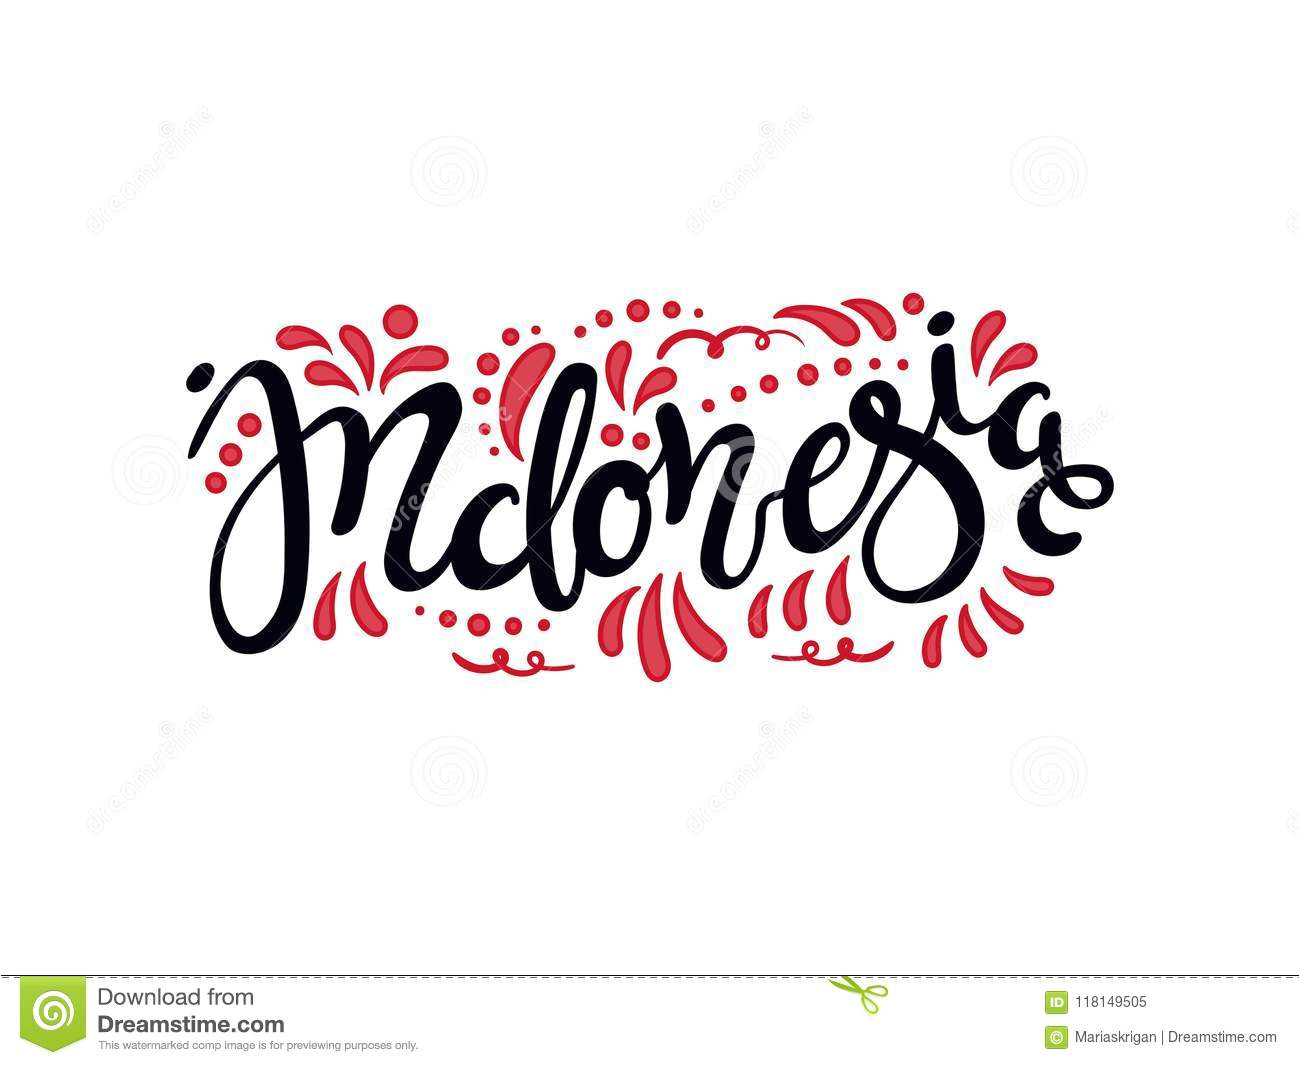 hand written calligraphic lettering quote indonesia decorative elements flag colors isolated objects white background 118149505 jpg